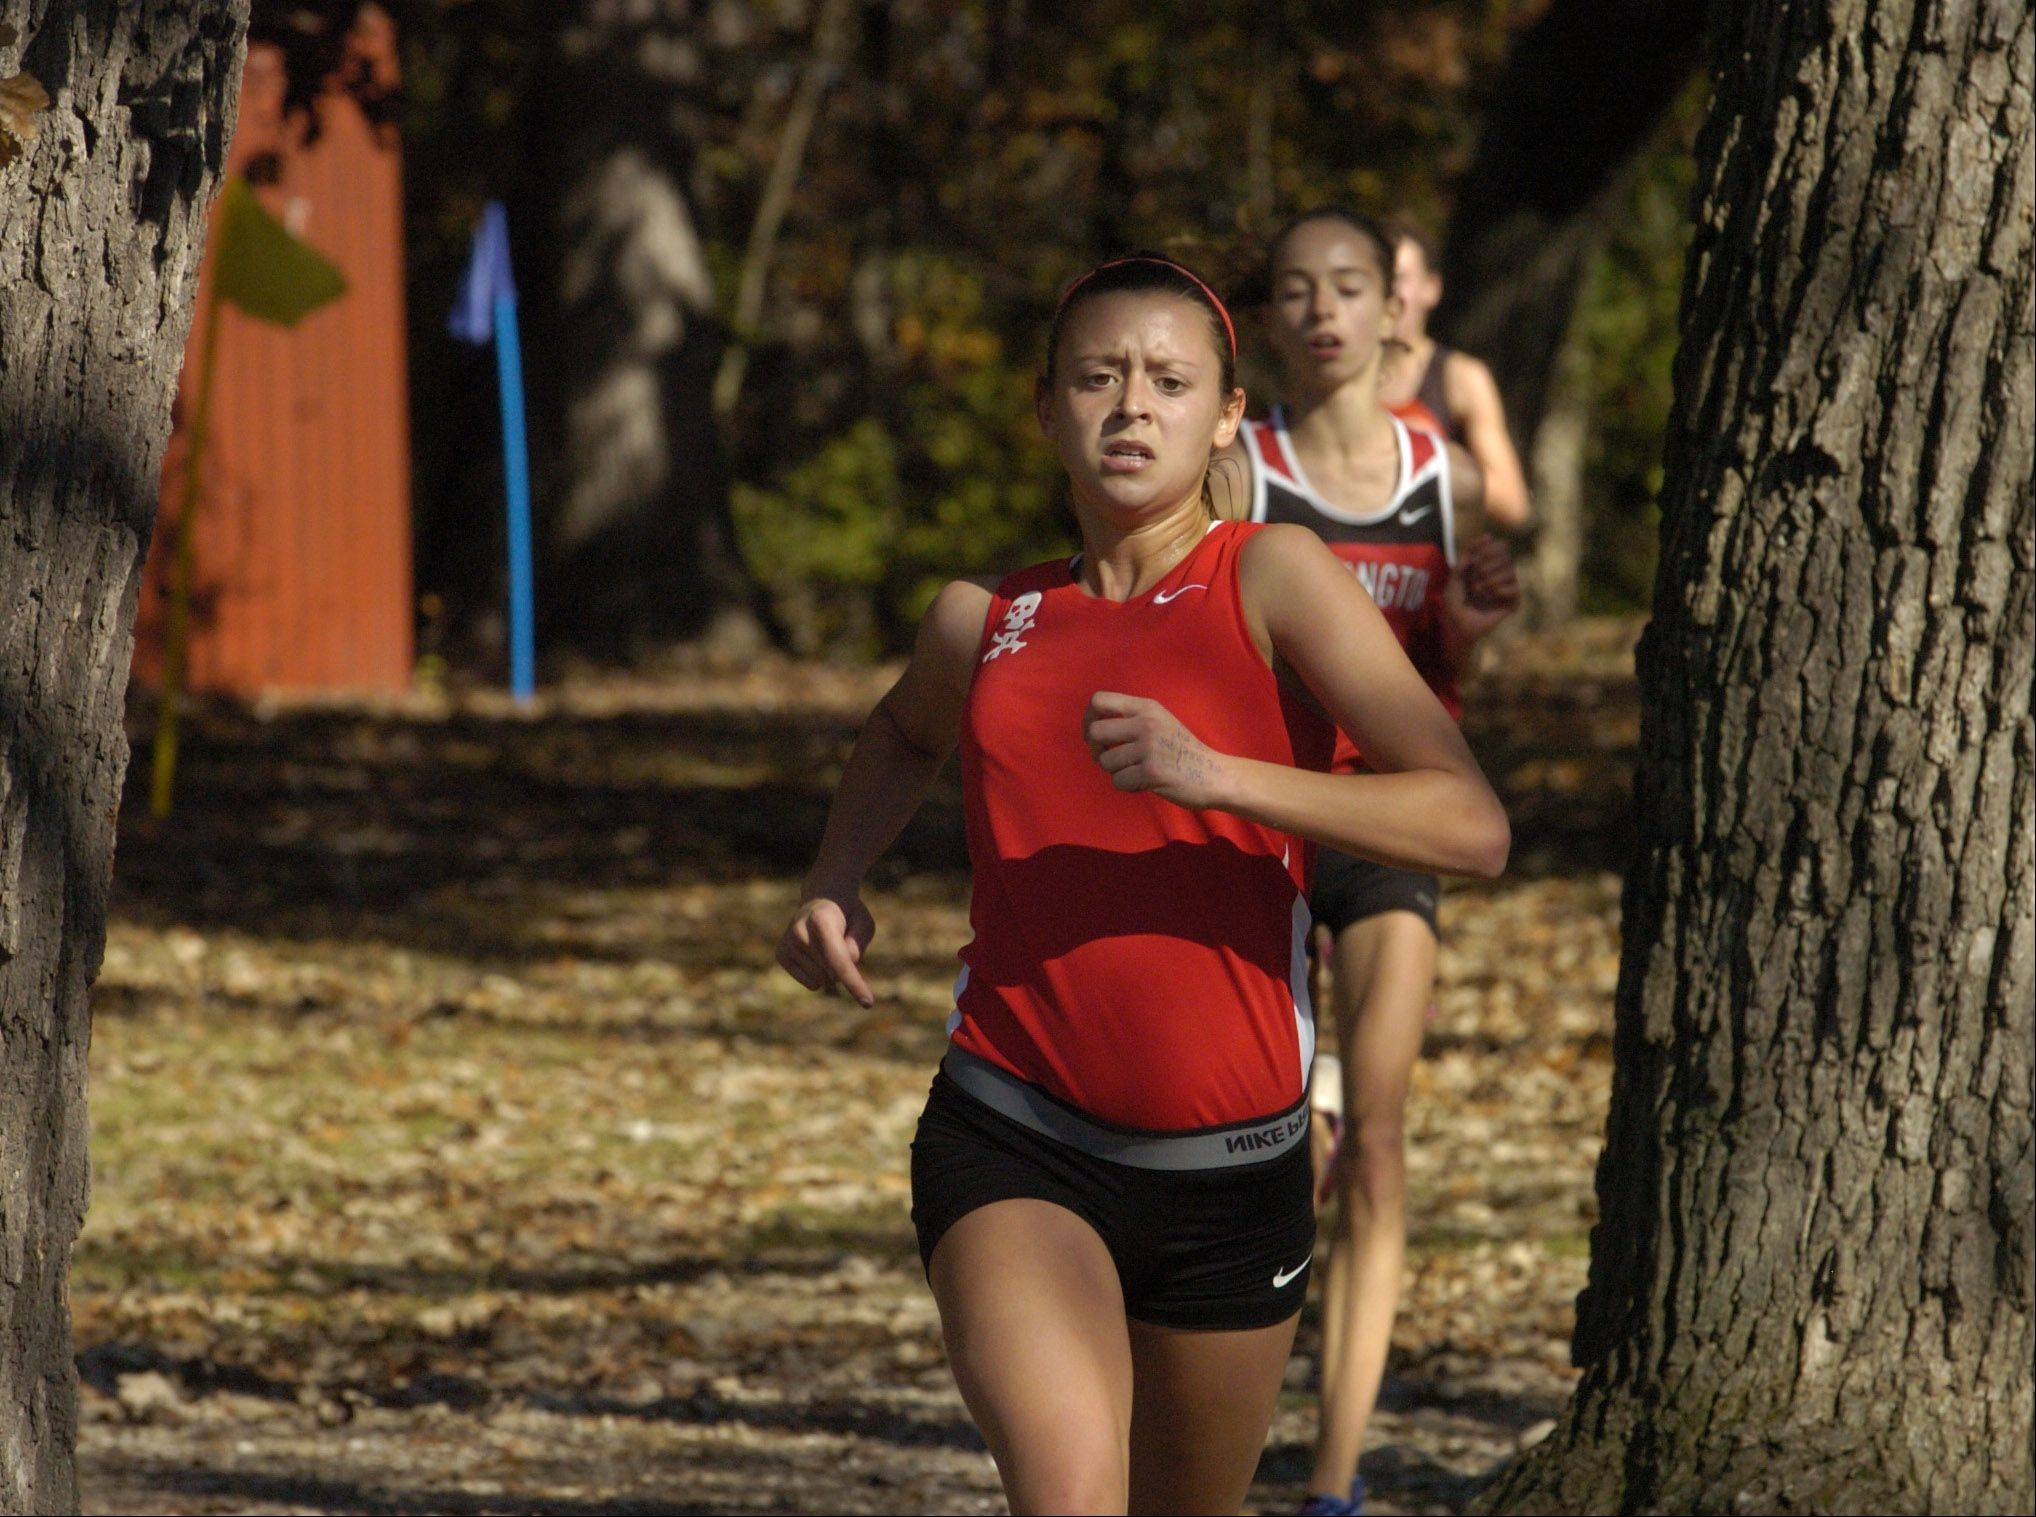 Palatine's Tess Wasowicz leads Barrington's Lauren Conroy through the woods on the way to winning last weekend's Grant regional.